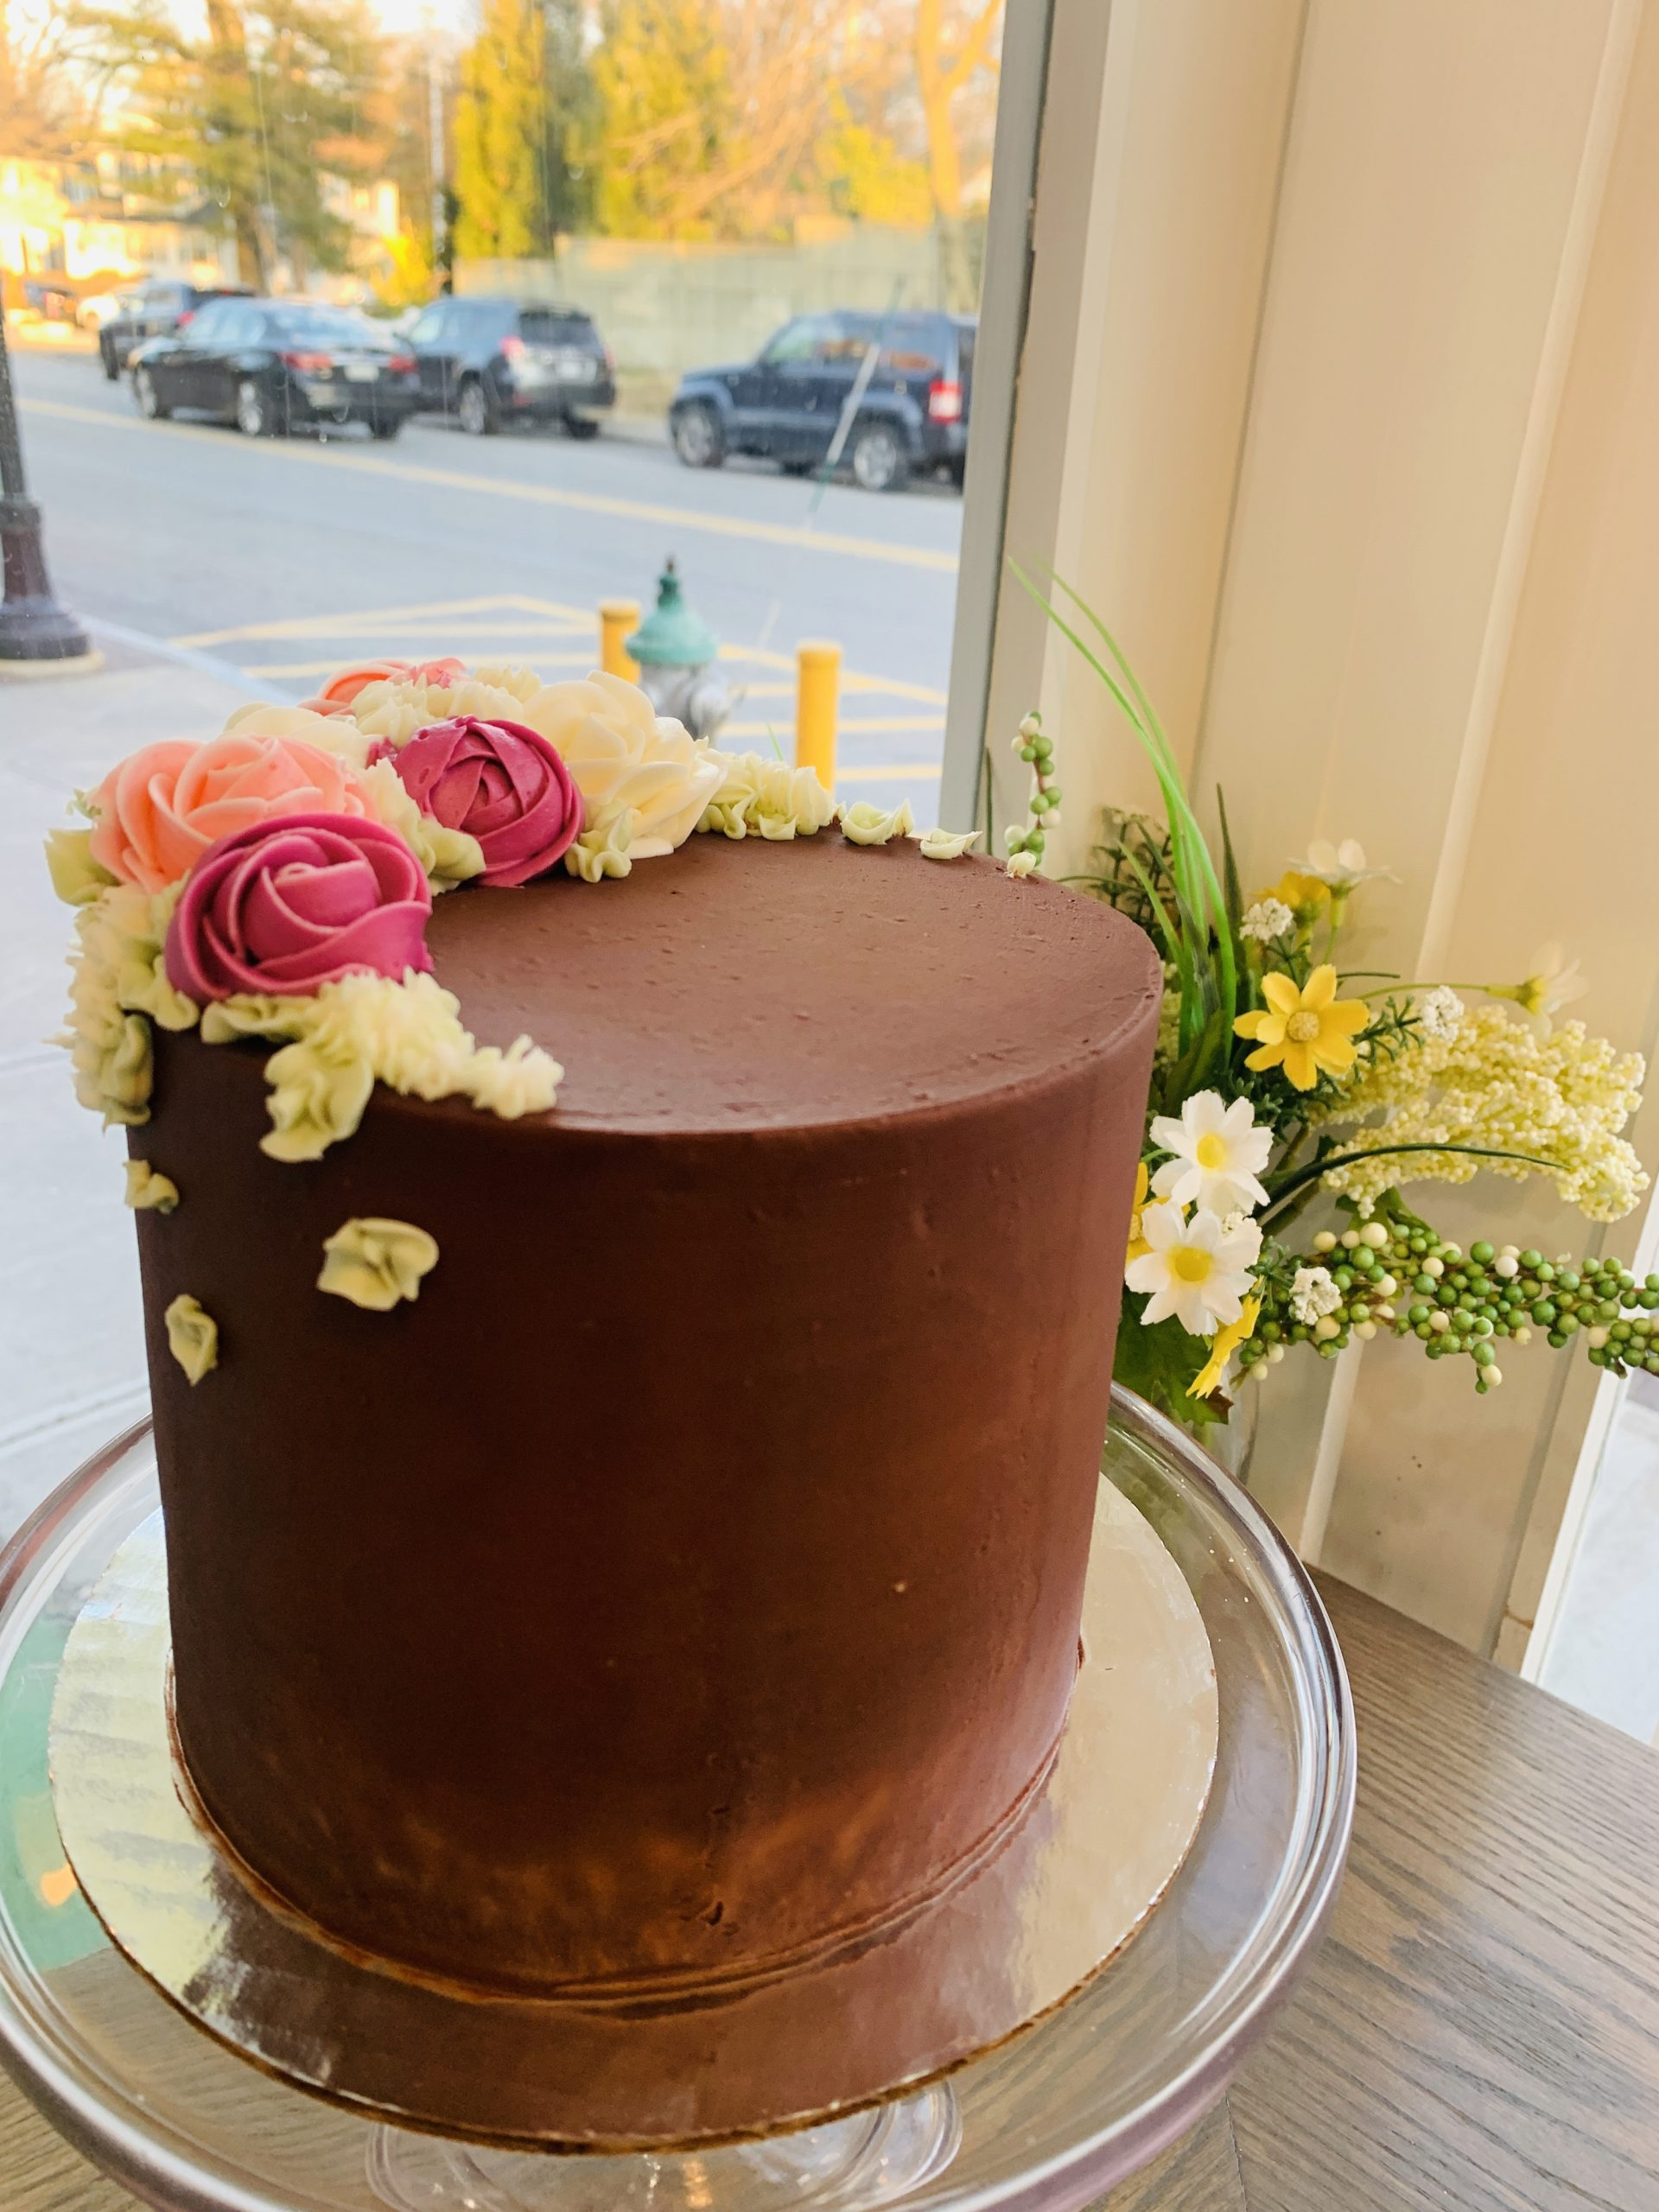 Gluten Free Everyday Celebration Cake- 3 layers of golden gluten free cake with chocolate fudge frosting and beautiful flower finish